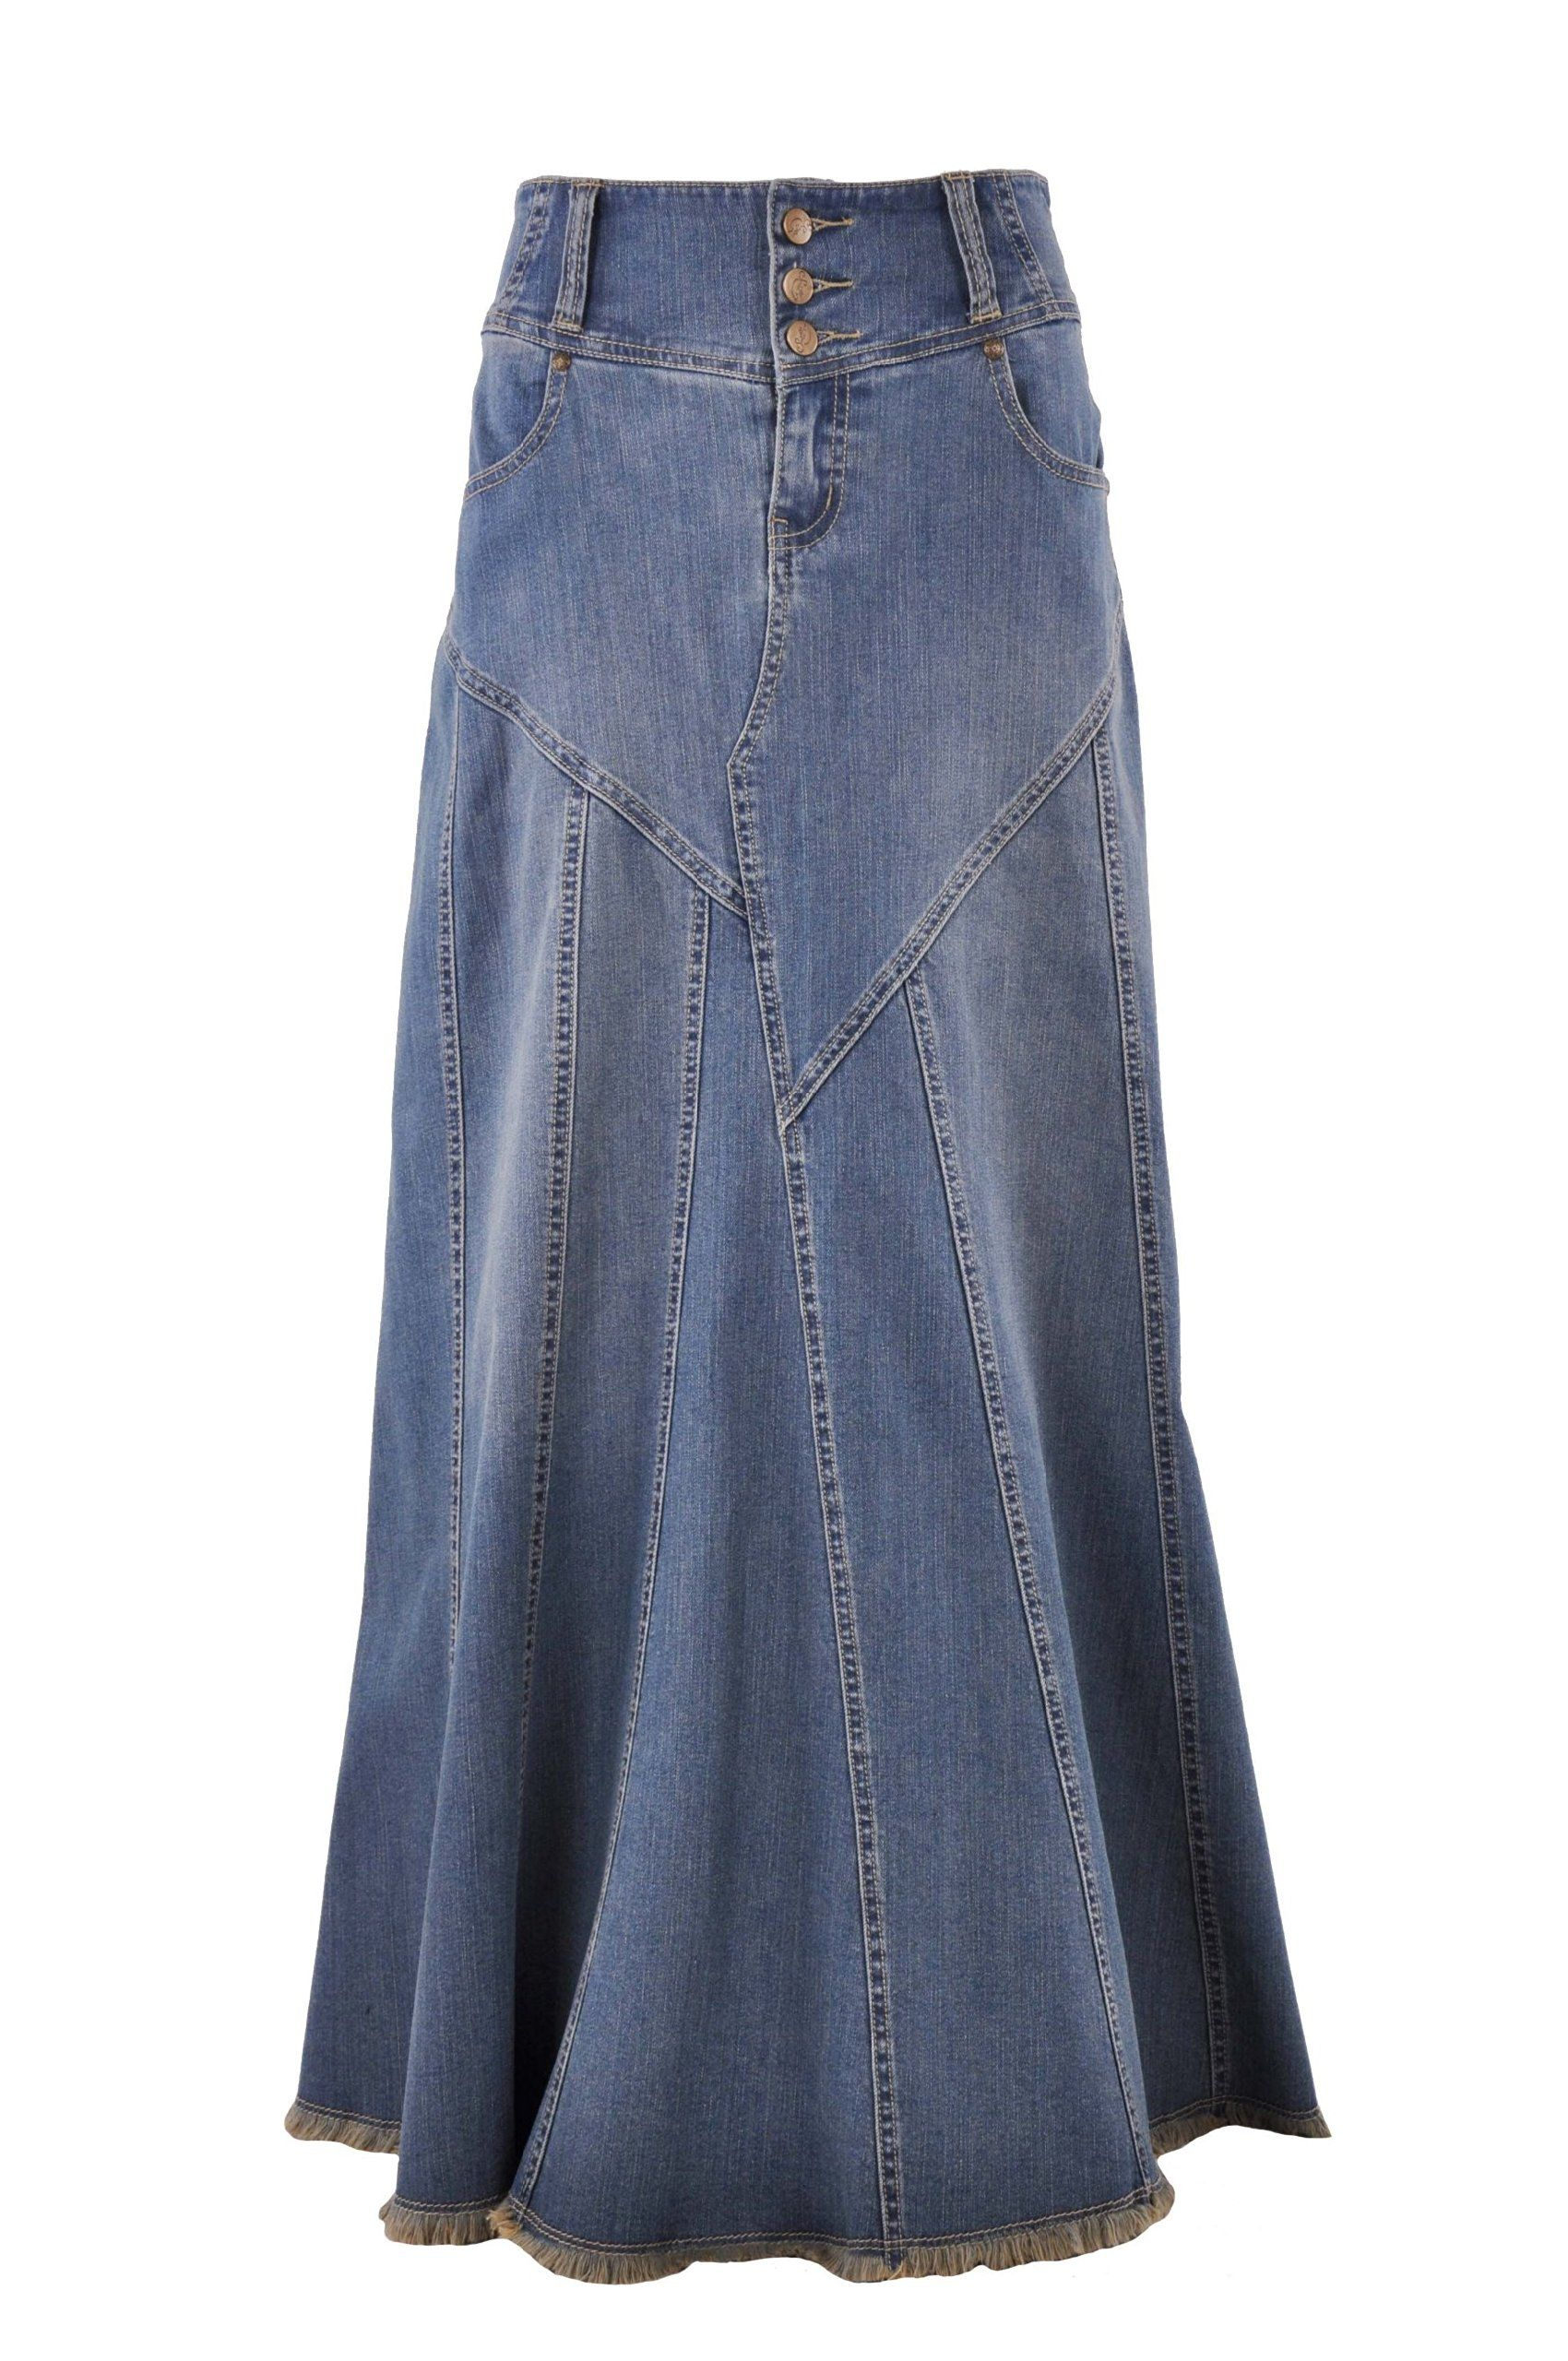 76744344f1 Style J Fantastic Flared Long Jean Skirt - have this one in khaki ...